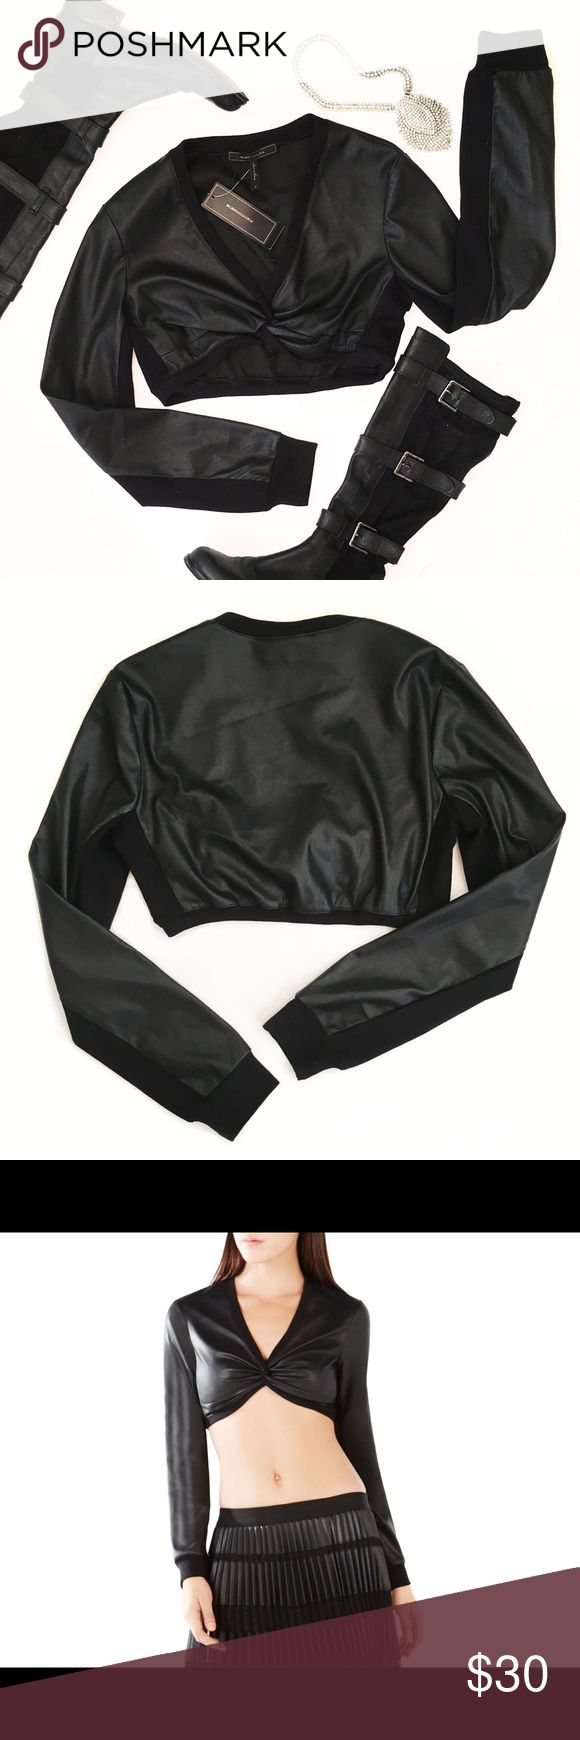 BCBG Vegan Leather Crop Top Edgy and sexy! Try it with a high waisted shirt and leggings! 🤘🏻 BCBGMaxAzria Tops